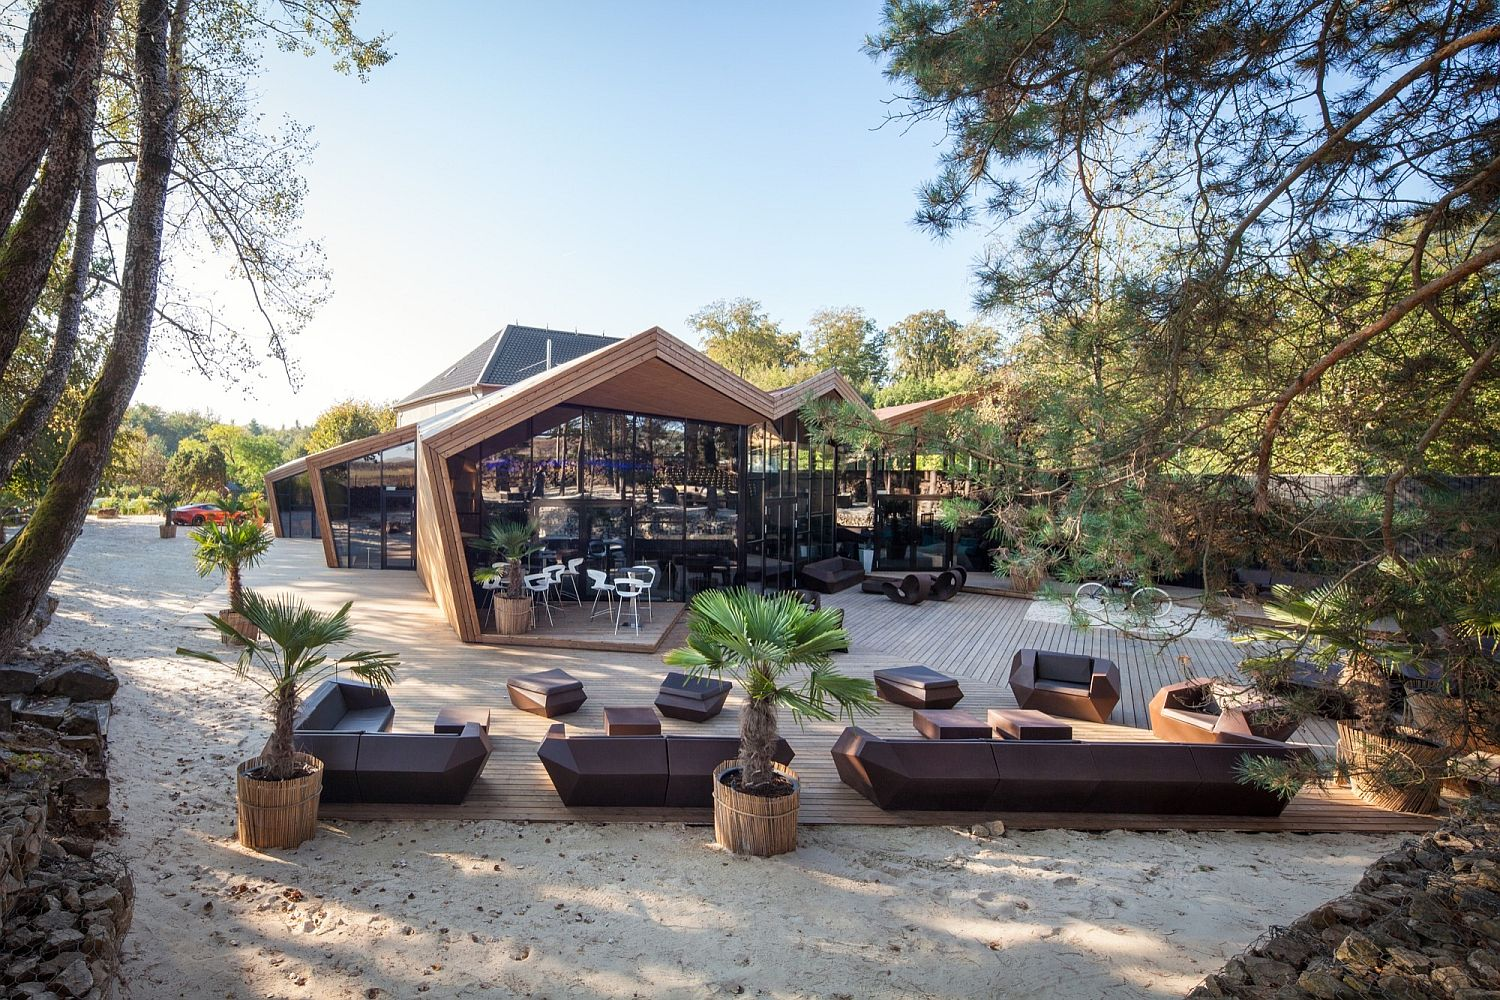 Outdoor-sitting-area-at-the-Boos-Beach-Club-Restaurant